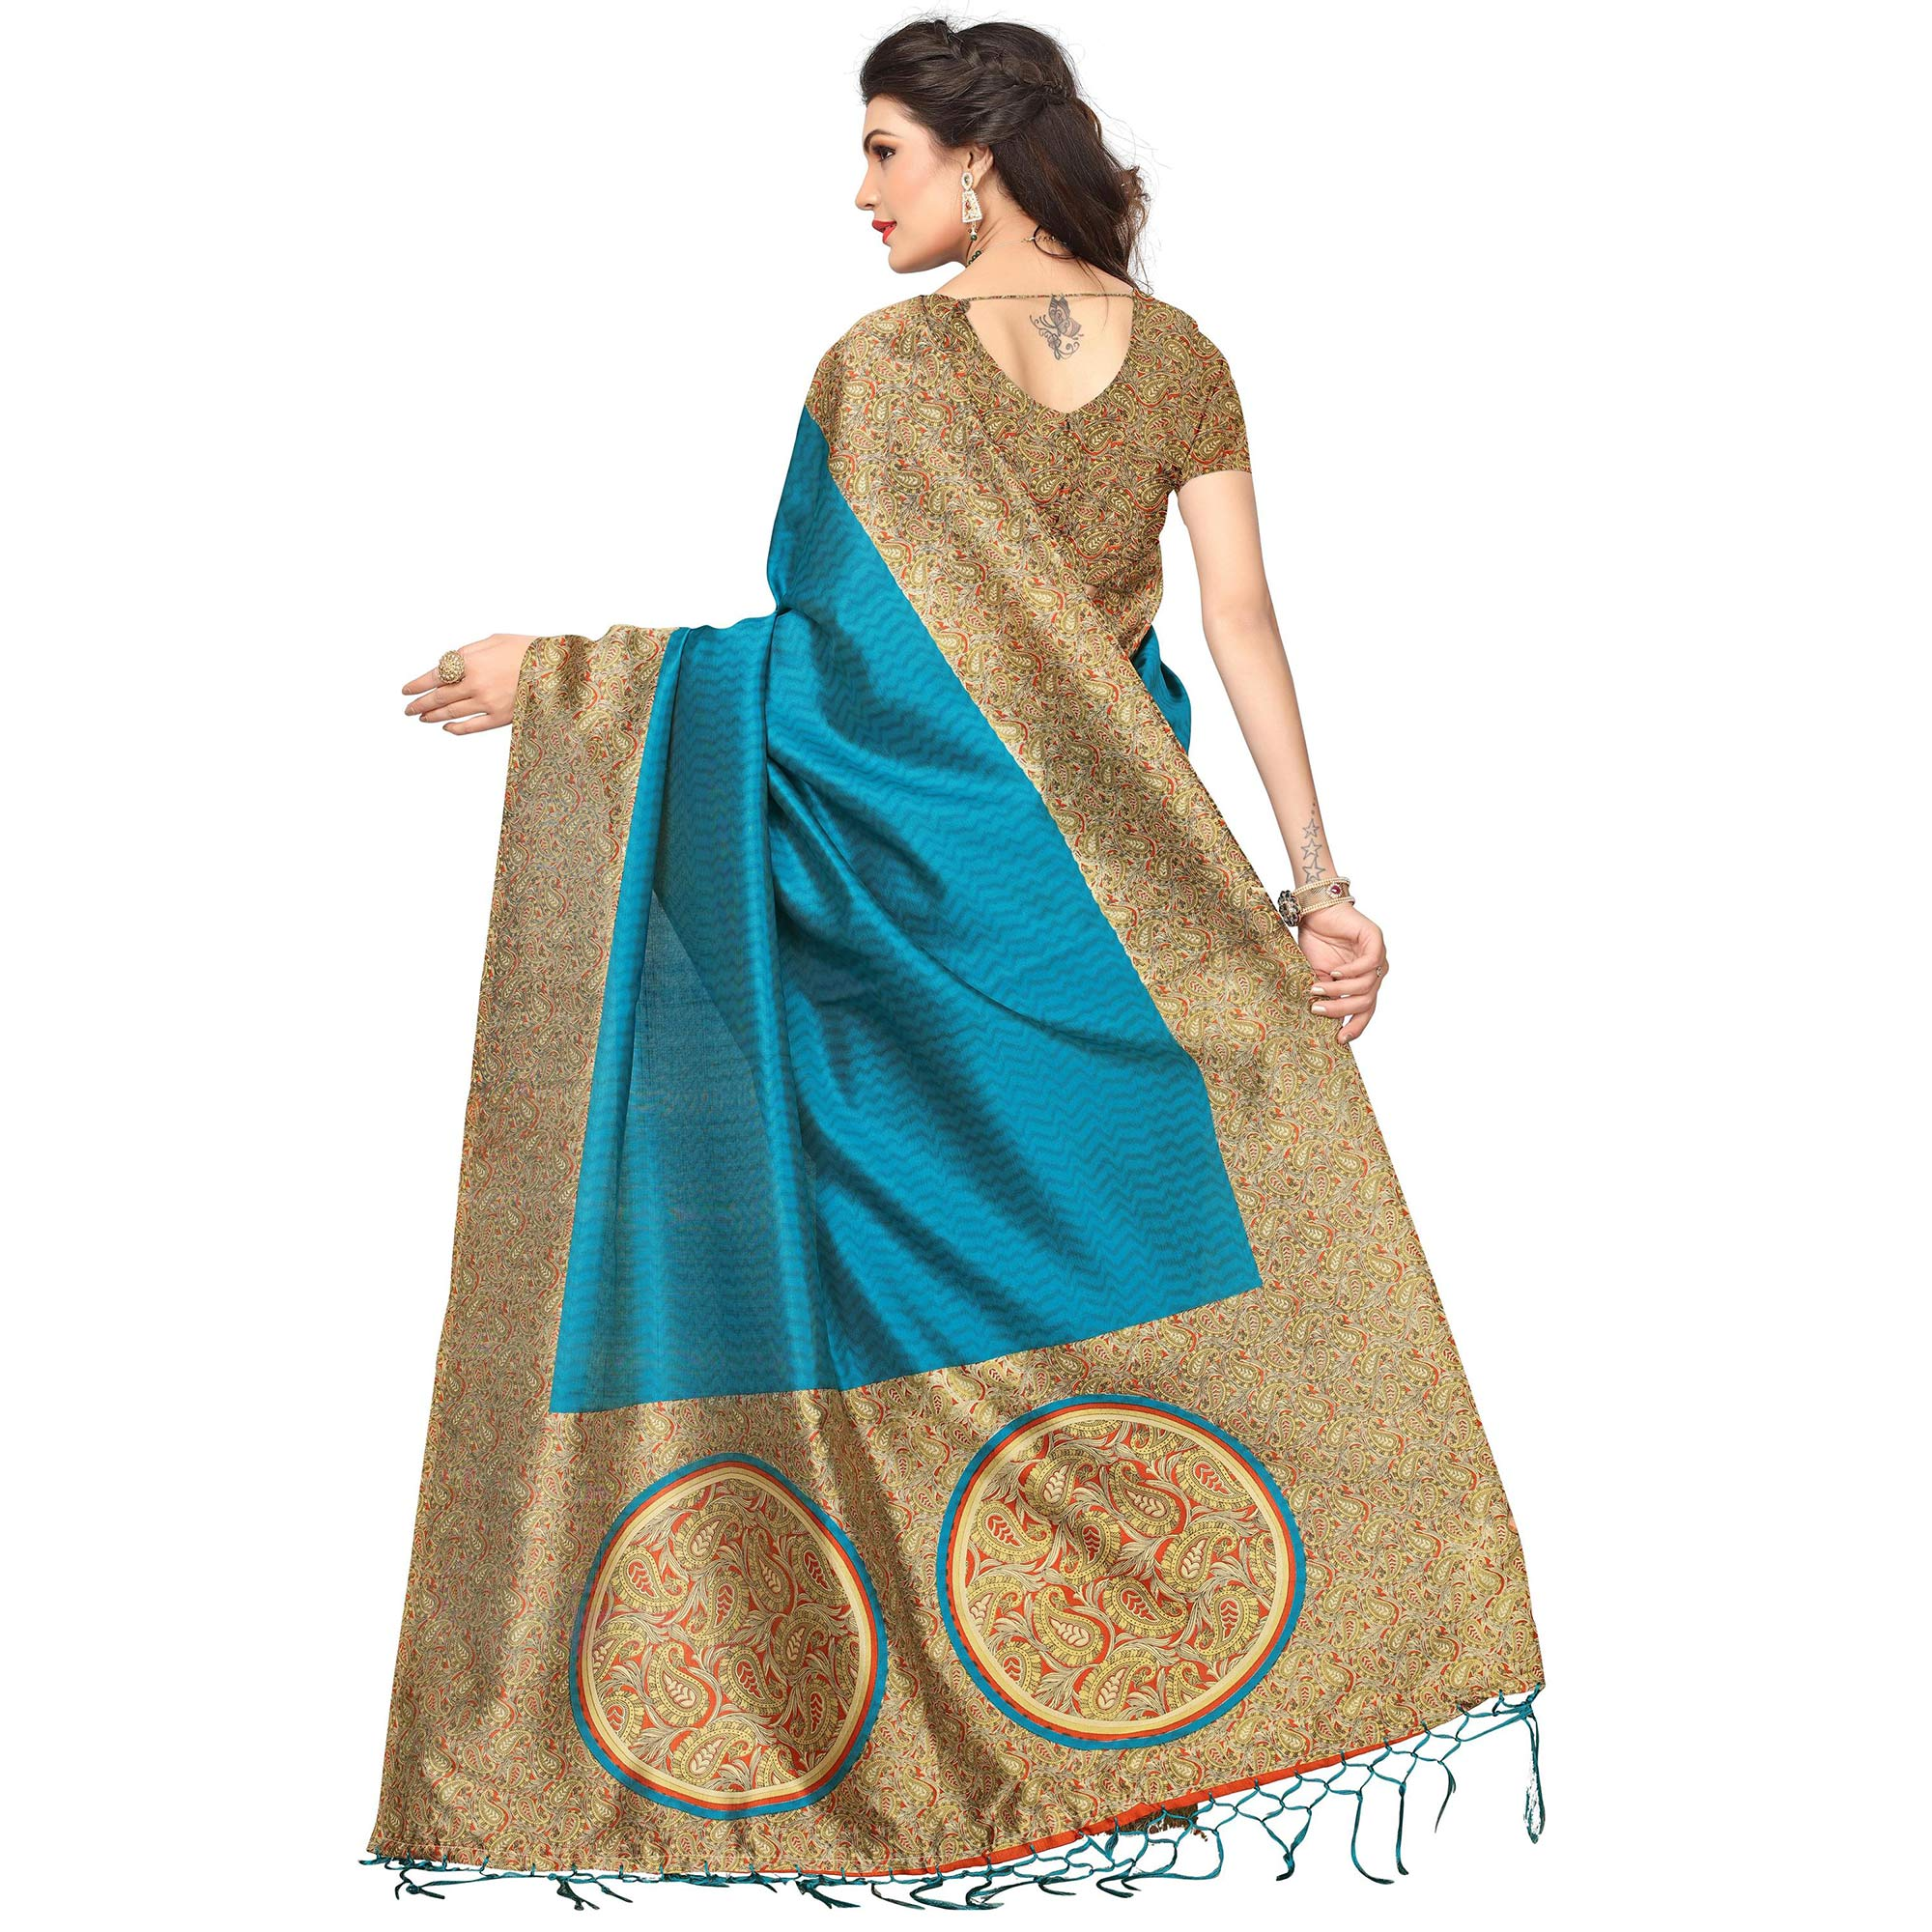 Entrancing Blue Colored Festive Wear Printed Mysore Art Silk Saree